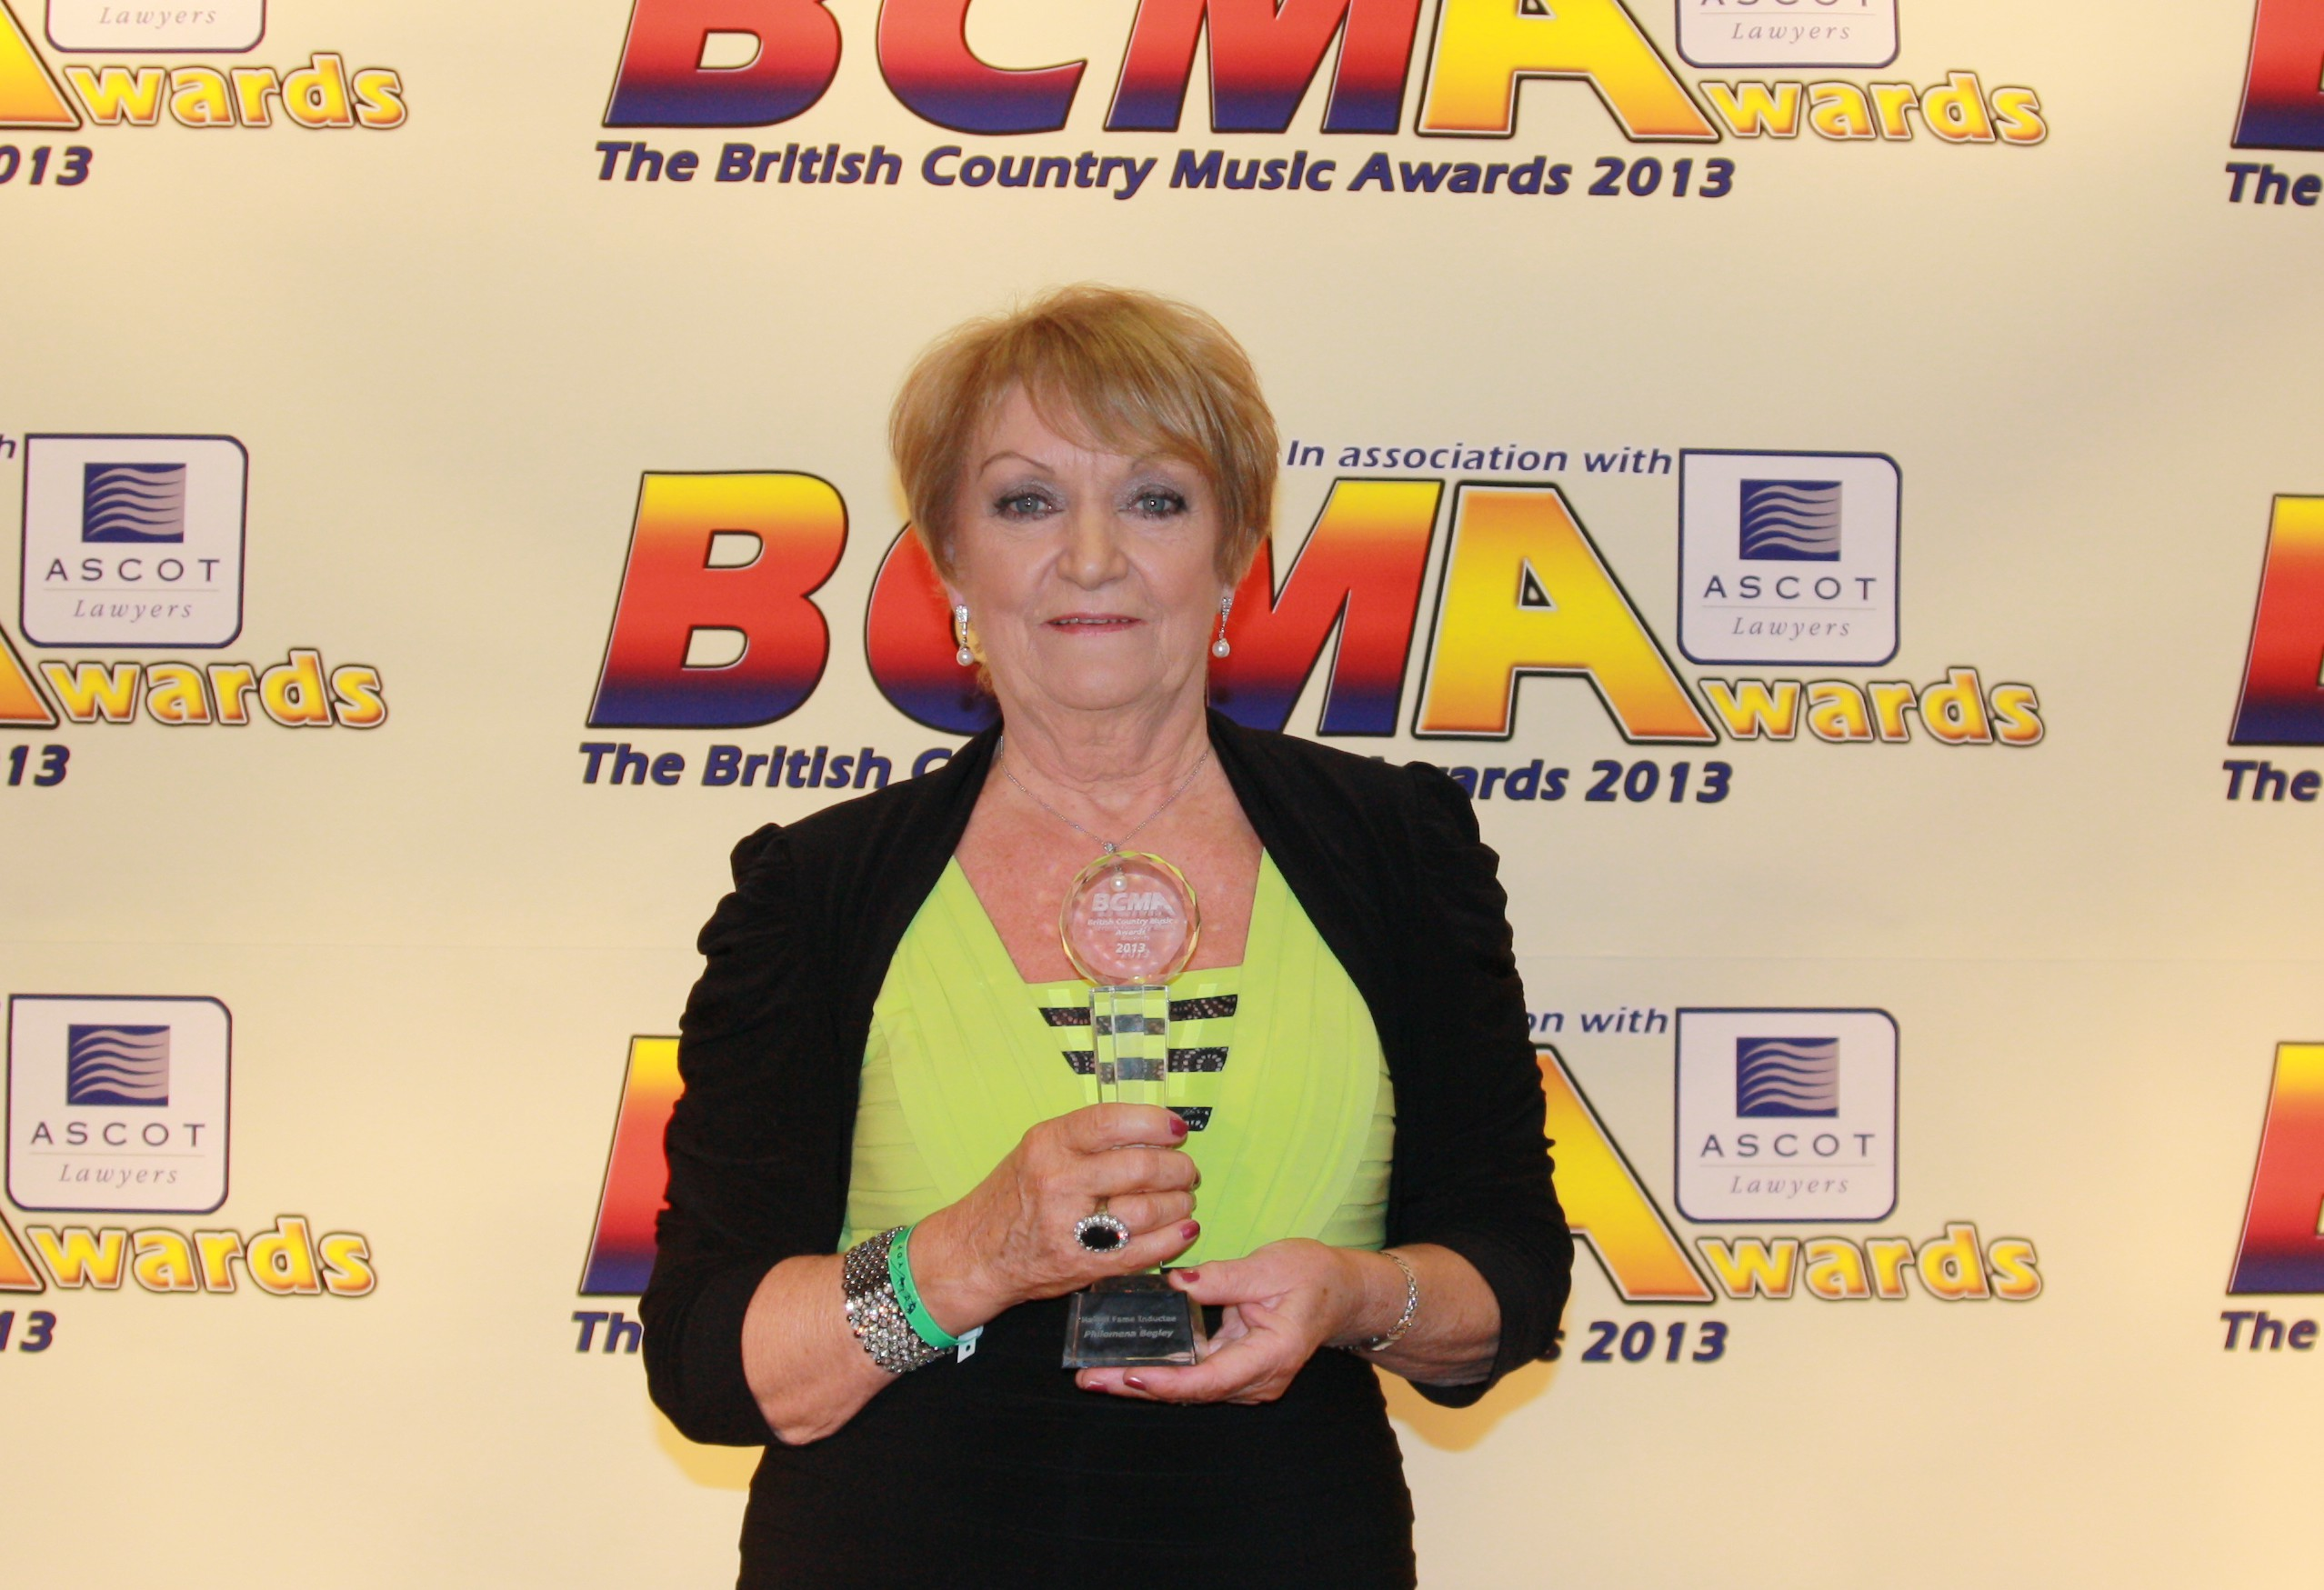 Philomena makes history at British Country Music Awards